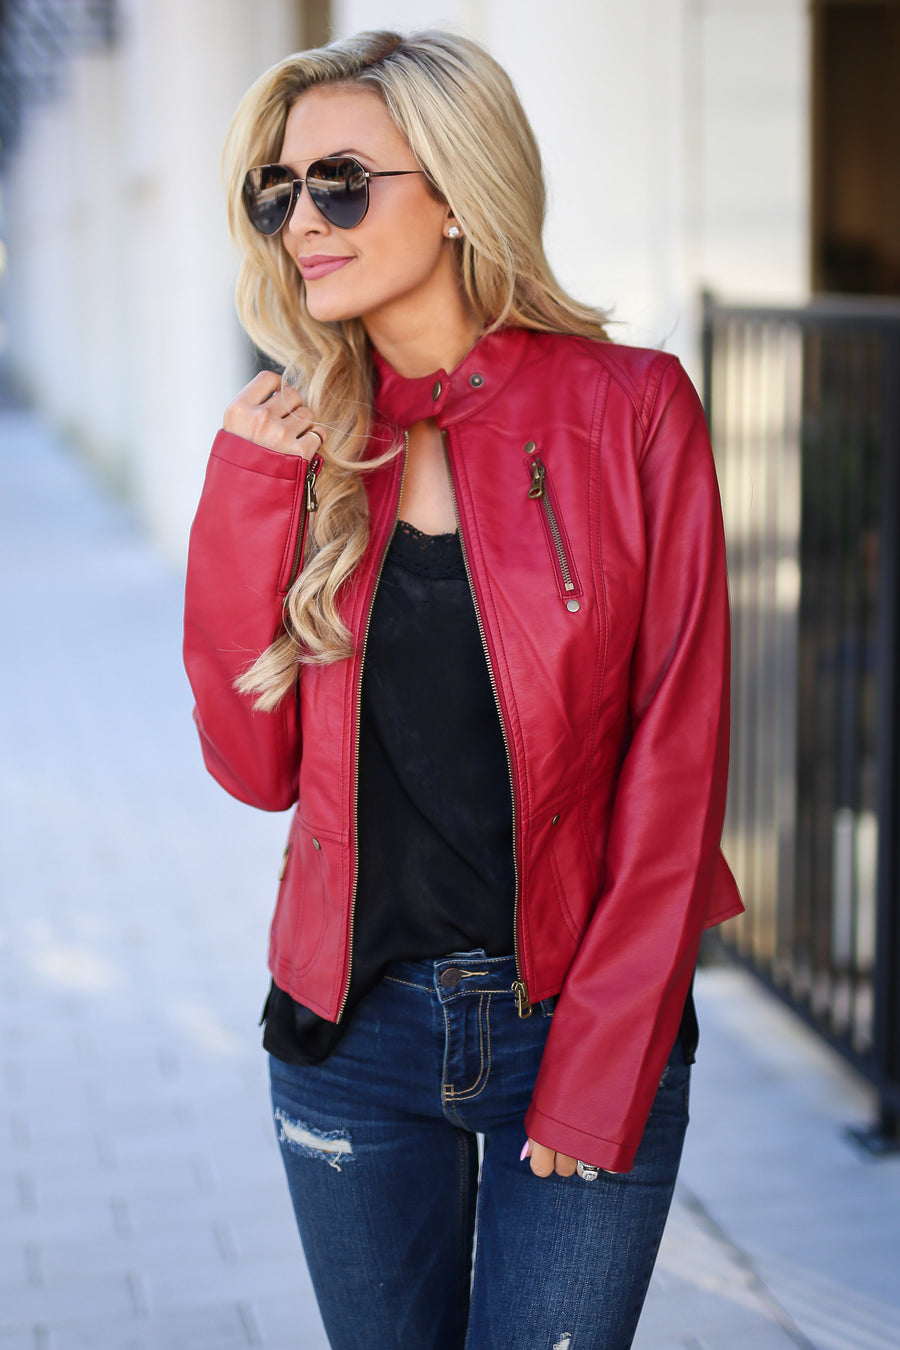 Ready For Take Off Jacket - Wine women's leather jacket, zipper, pockets, Closet Candy Boutique 1